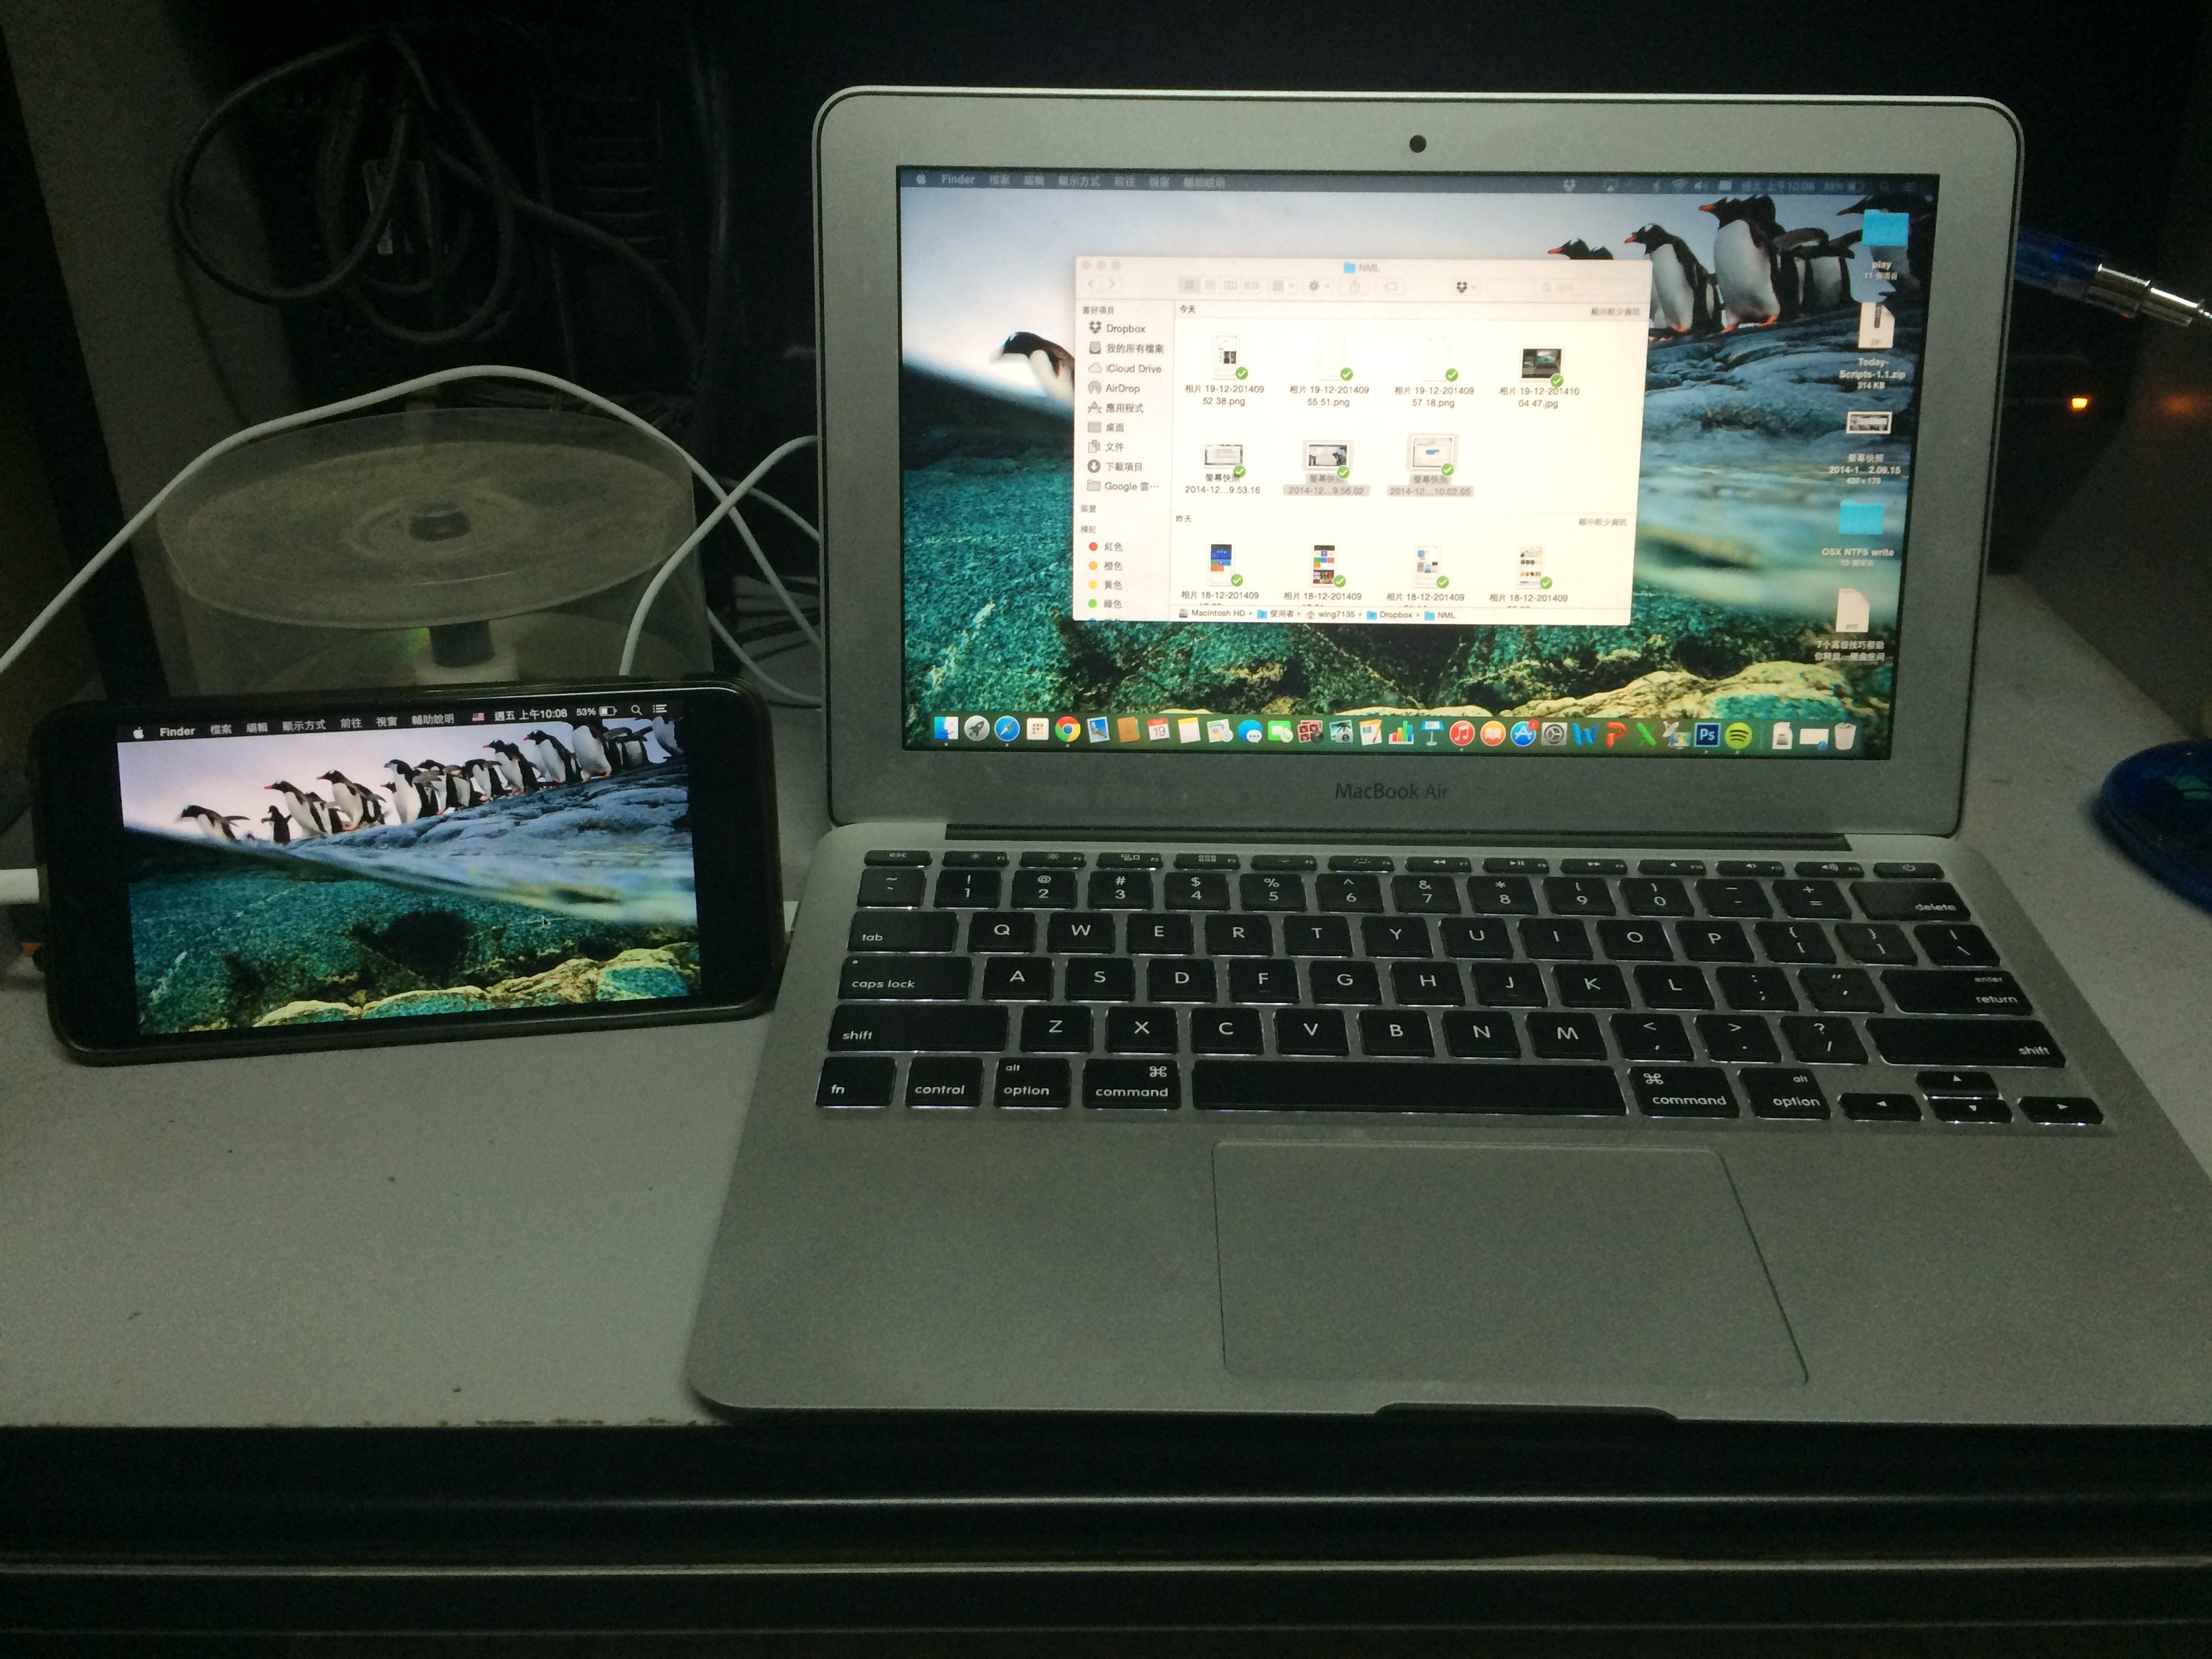 duet-let-ipad-become-the-second-monitor-of-mac_05